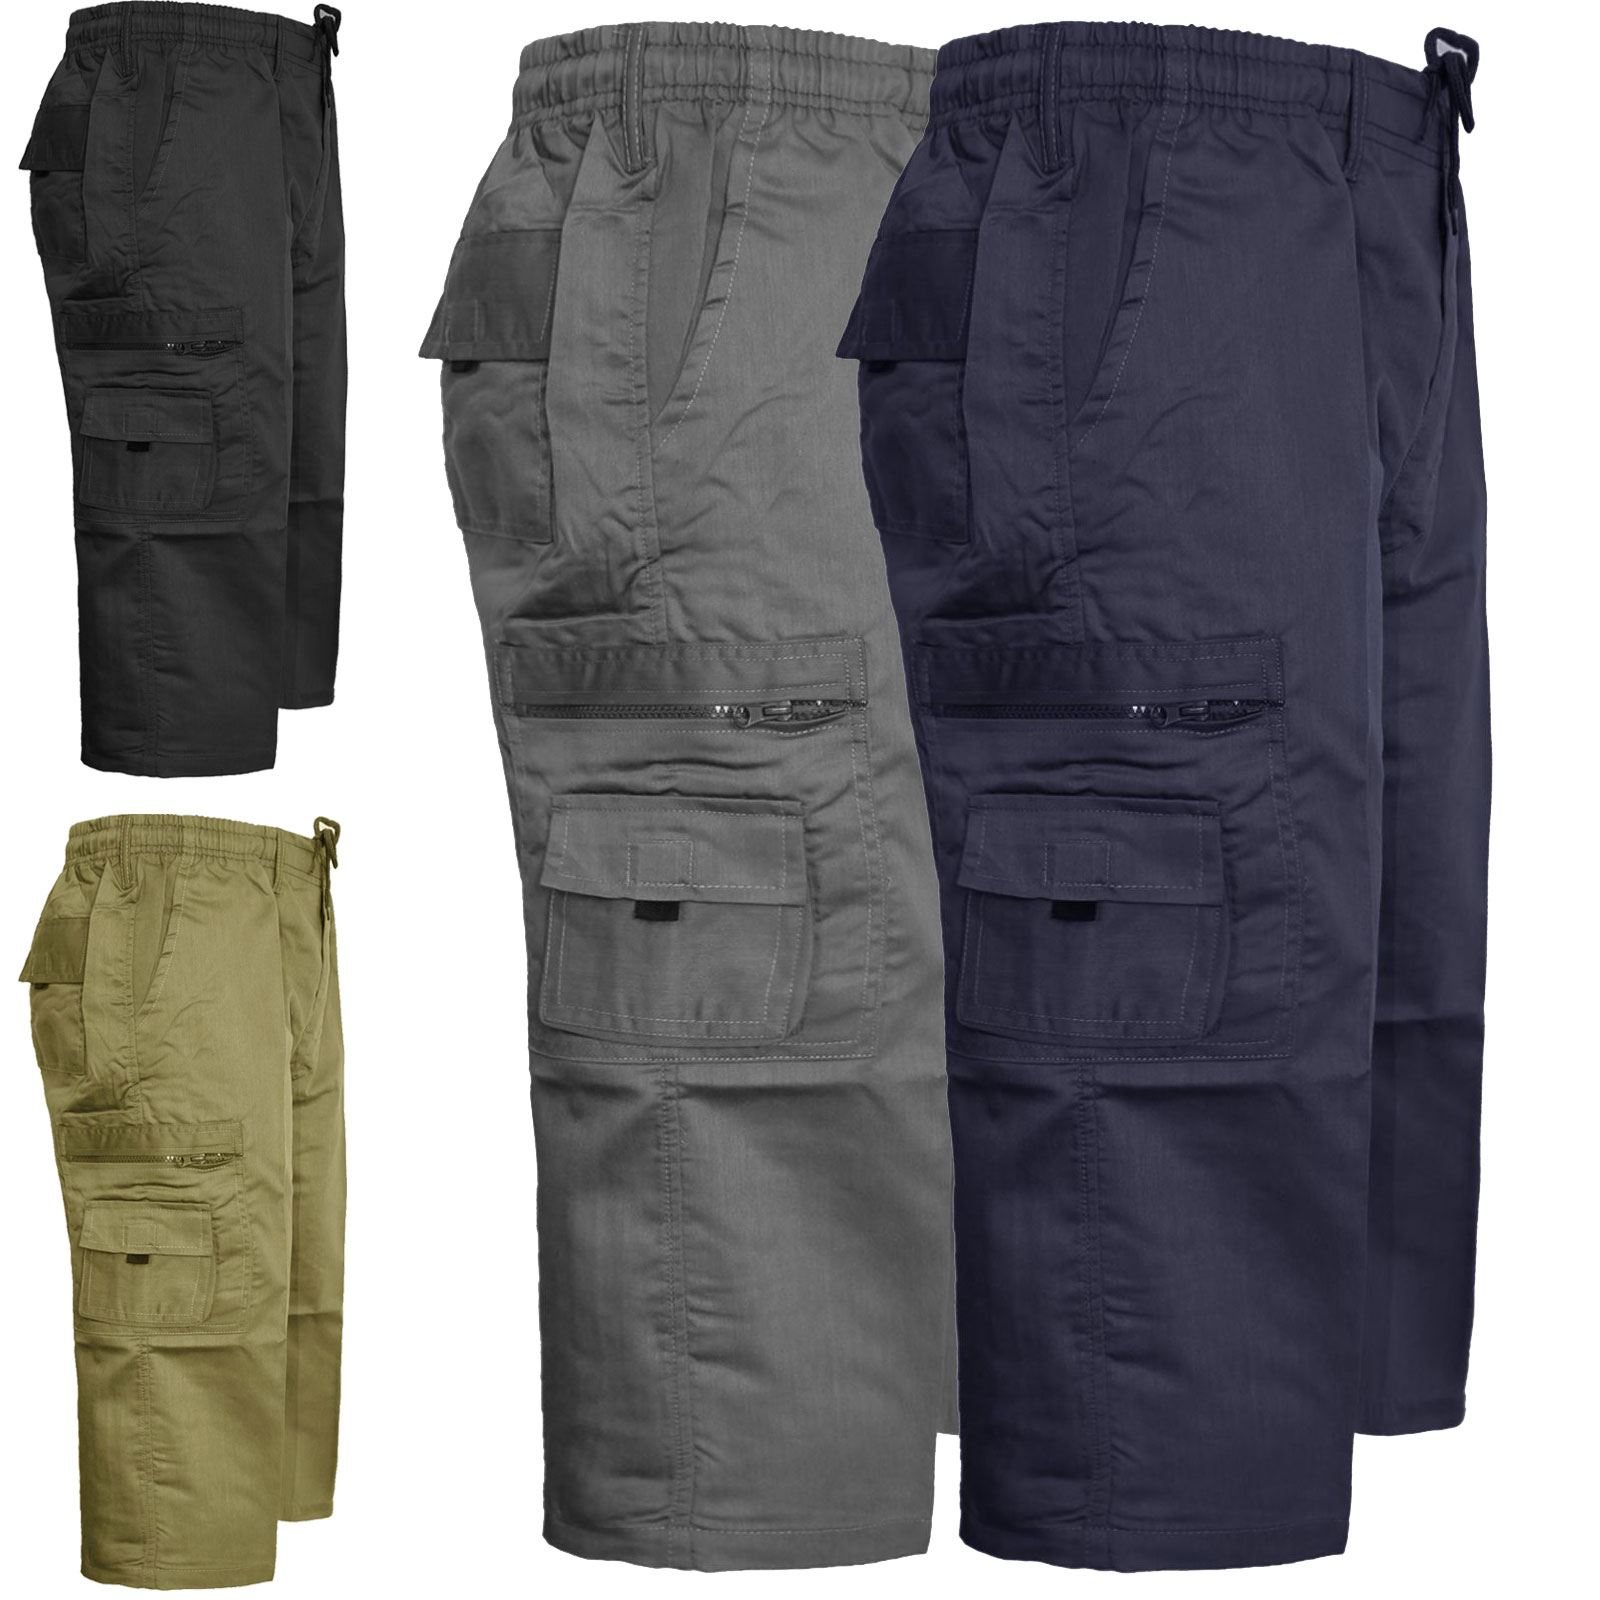 MENS CARGO COMBAT 3/4 SHORTS ELASTIC WAIST CASUAL PANTS BIG SIZES ...